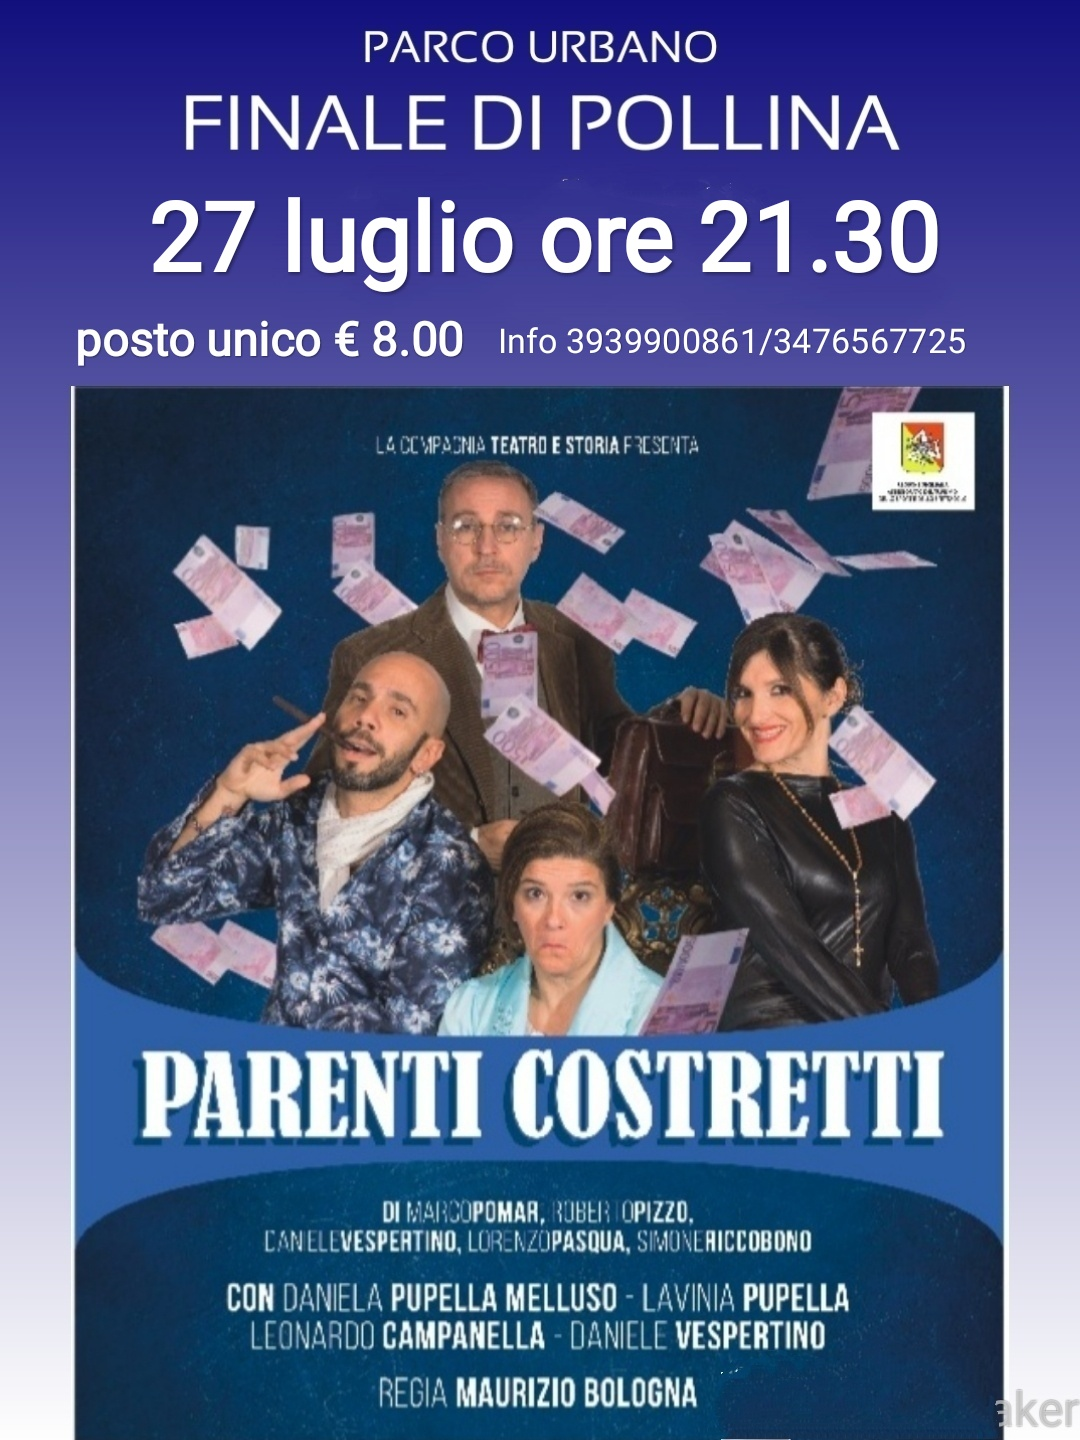 Parenti costretti, commedia brillante in scena a Finale